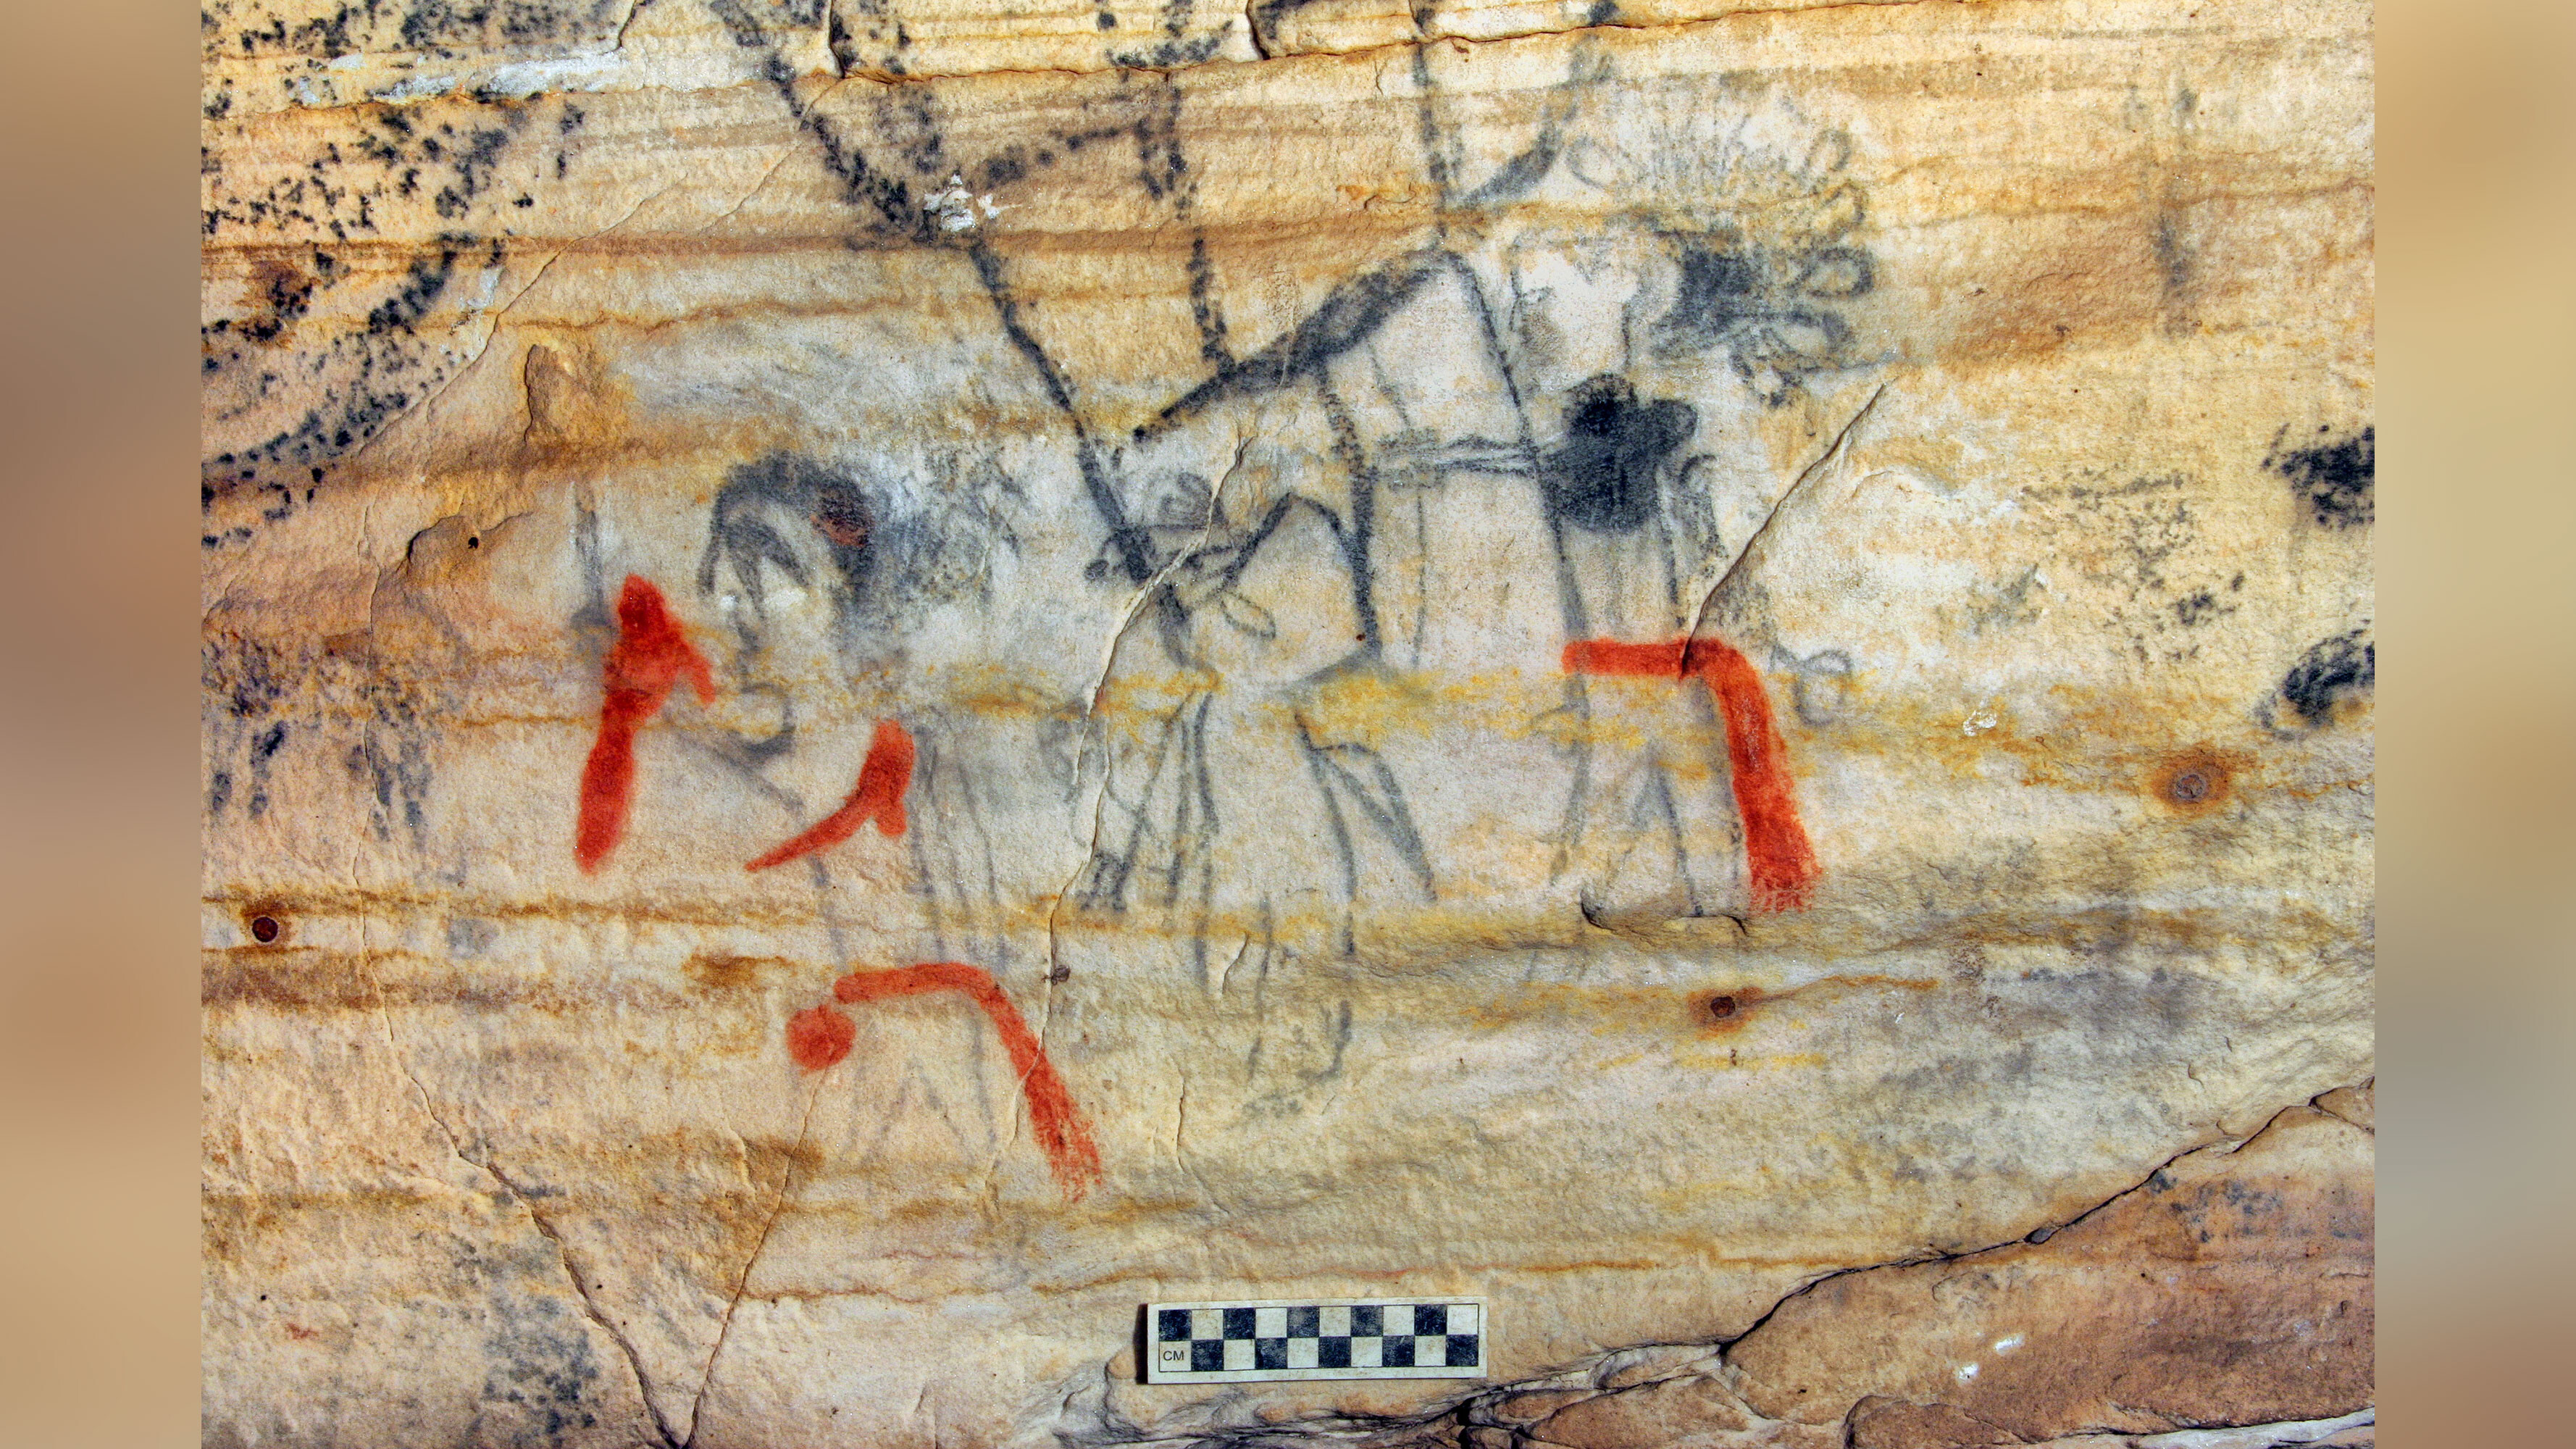 A cave full of ancient Indigenous paintings sold for more than $2 million. The Osage Nation says it belongs to them